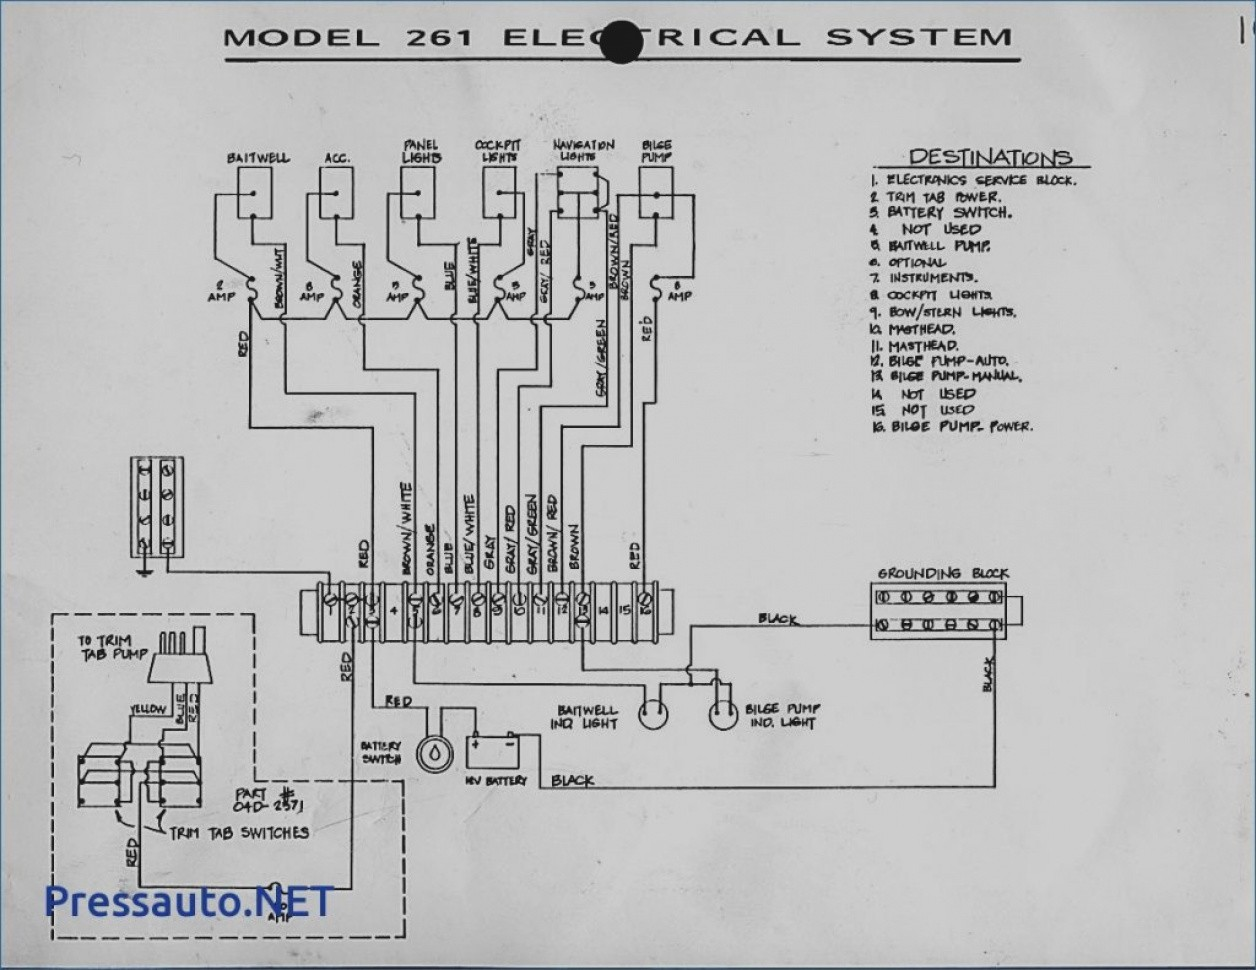 Best Rule Bilge Pump Float Switch Wiring Diagram Boat Pumps Top 10 And A